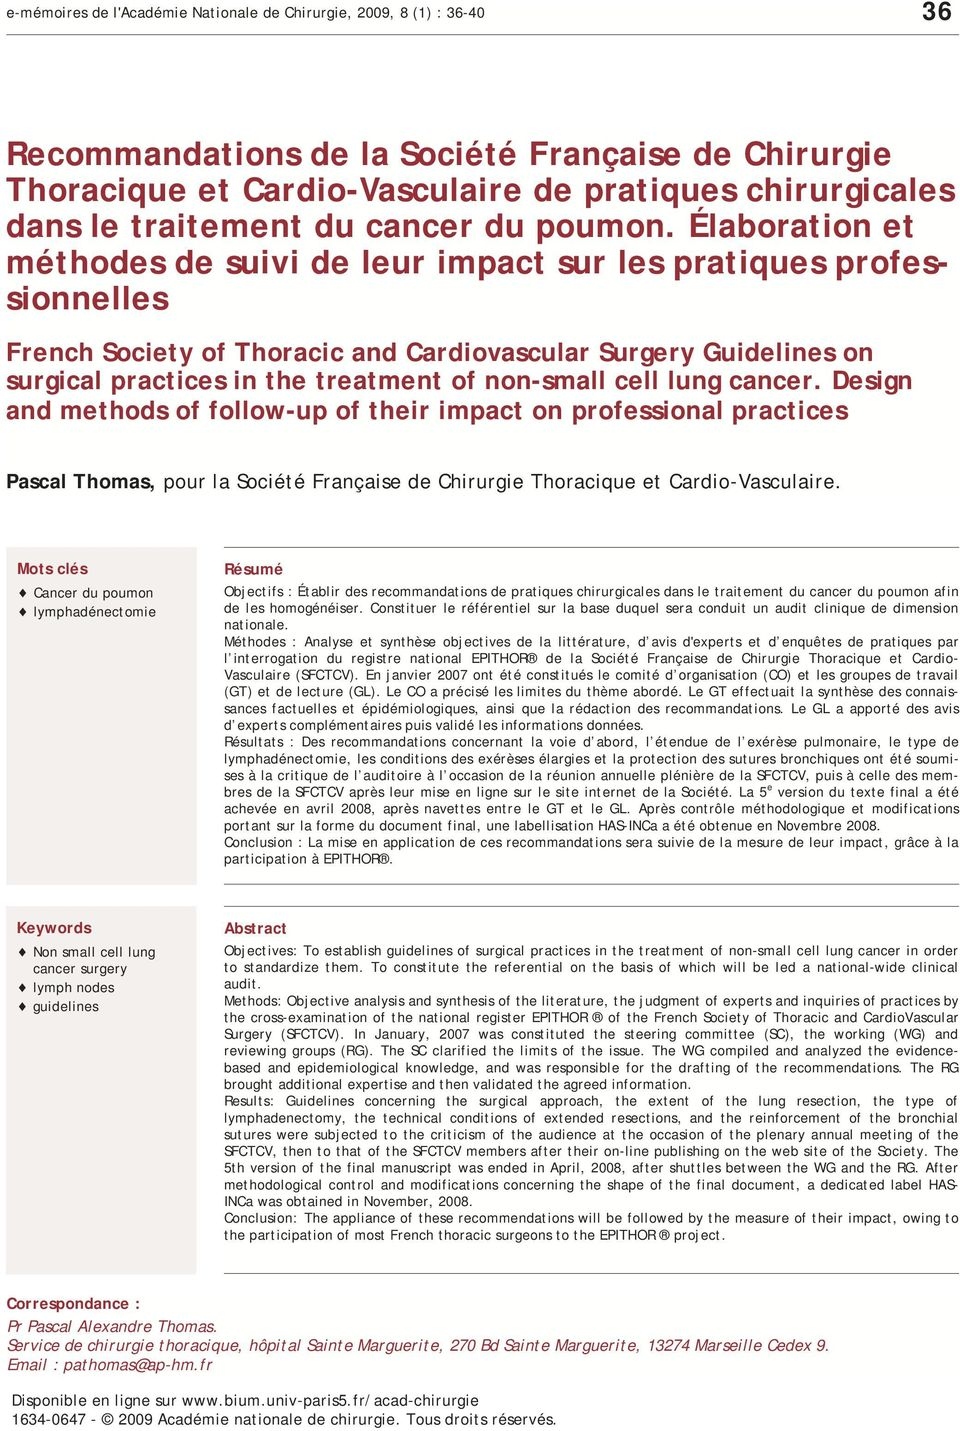 Élaboration et méthodes de suivi de leur impact sur les pratiques professionnelles French Society of Thoracic and Cardiovascular Surgery Guidelines on surgical practices in the treatment of non-small